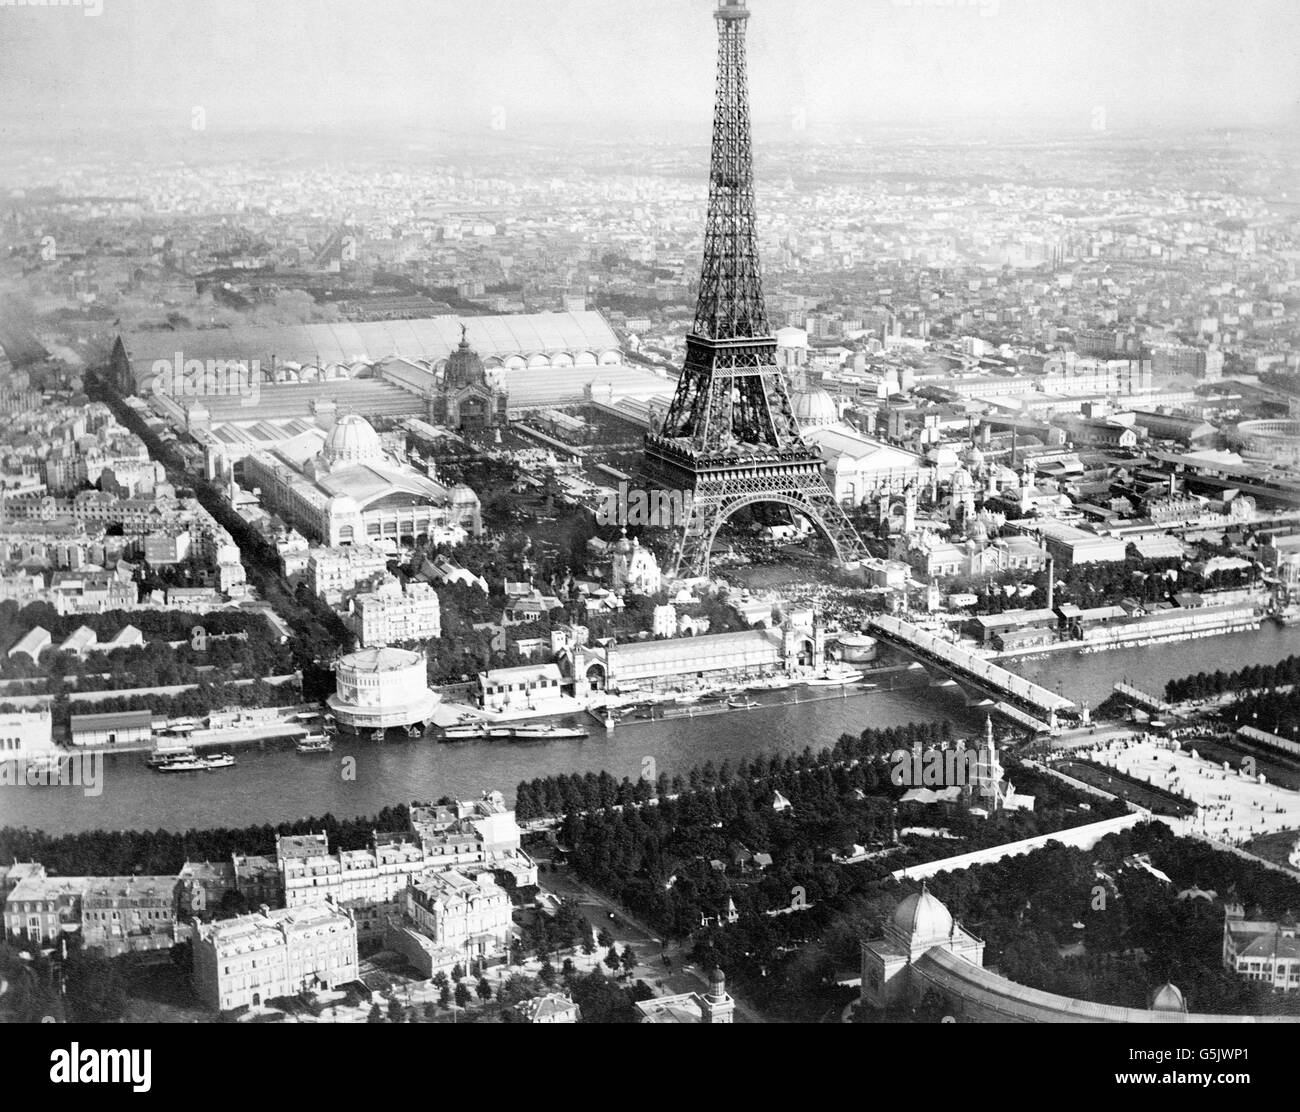 Paris Exposition 1889. Aerial view of Paris, France, from a balloon,  showing the River Seine, the Eiffel Tower and buildings of the Exposition  Universelle ...